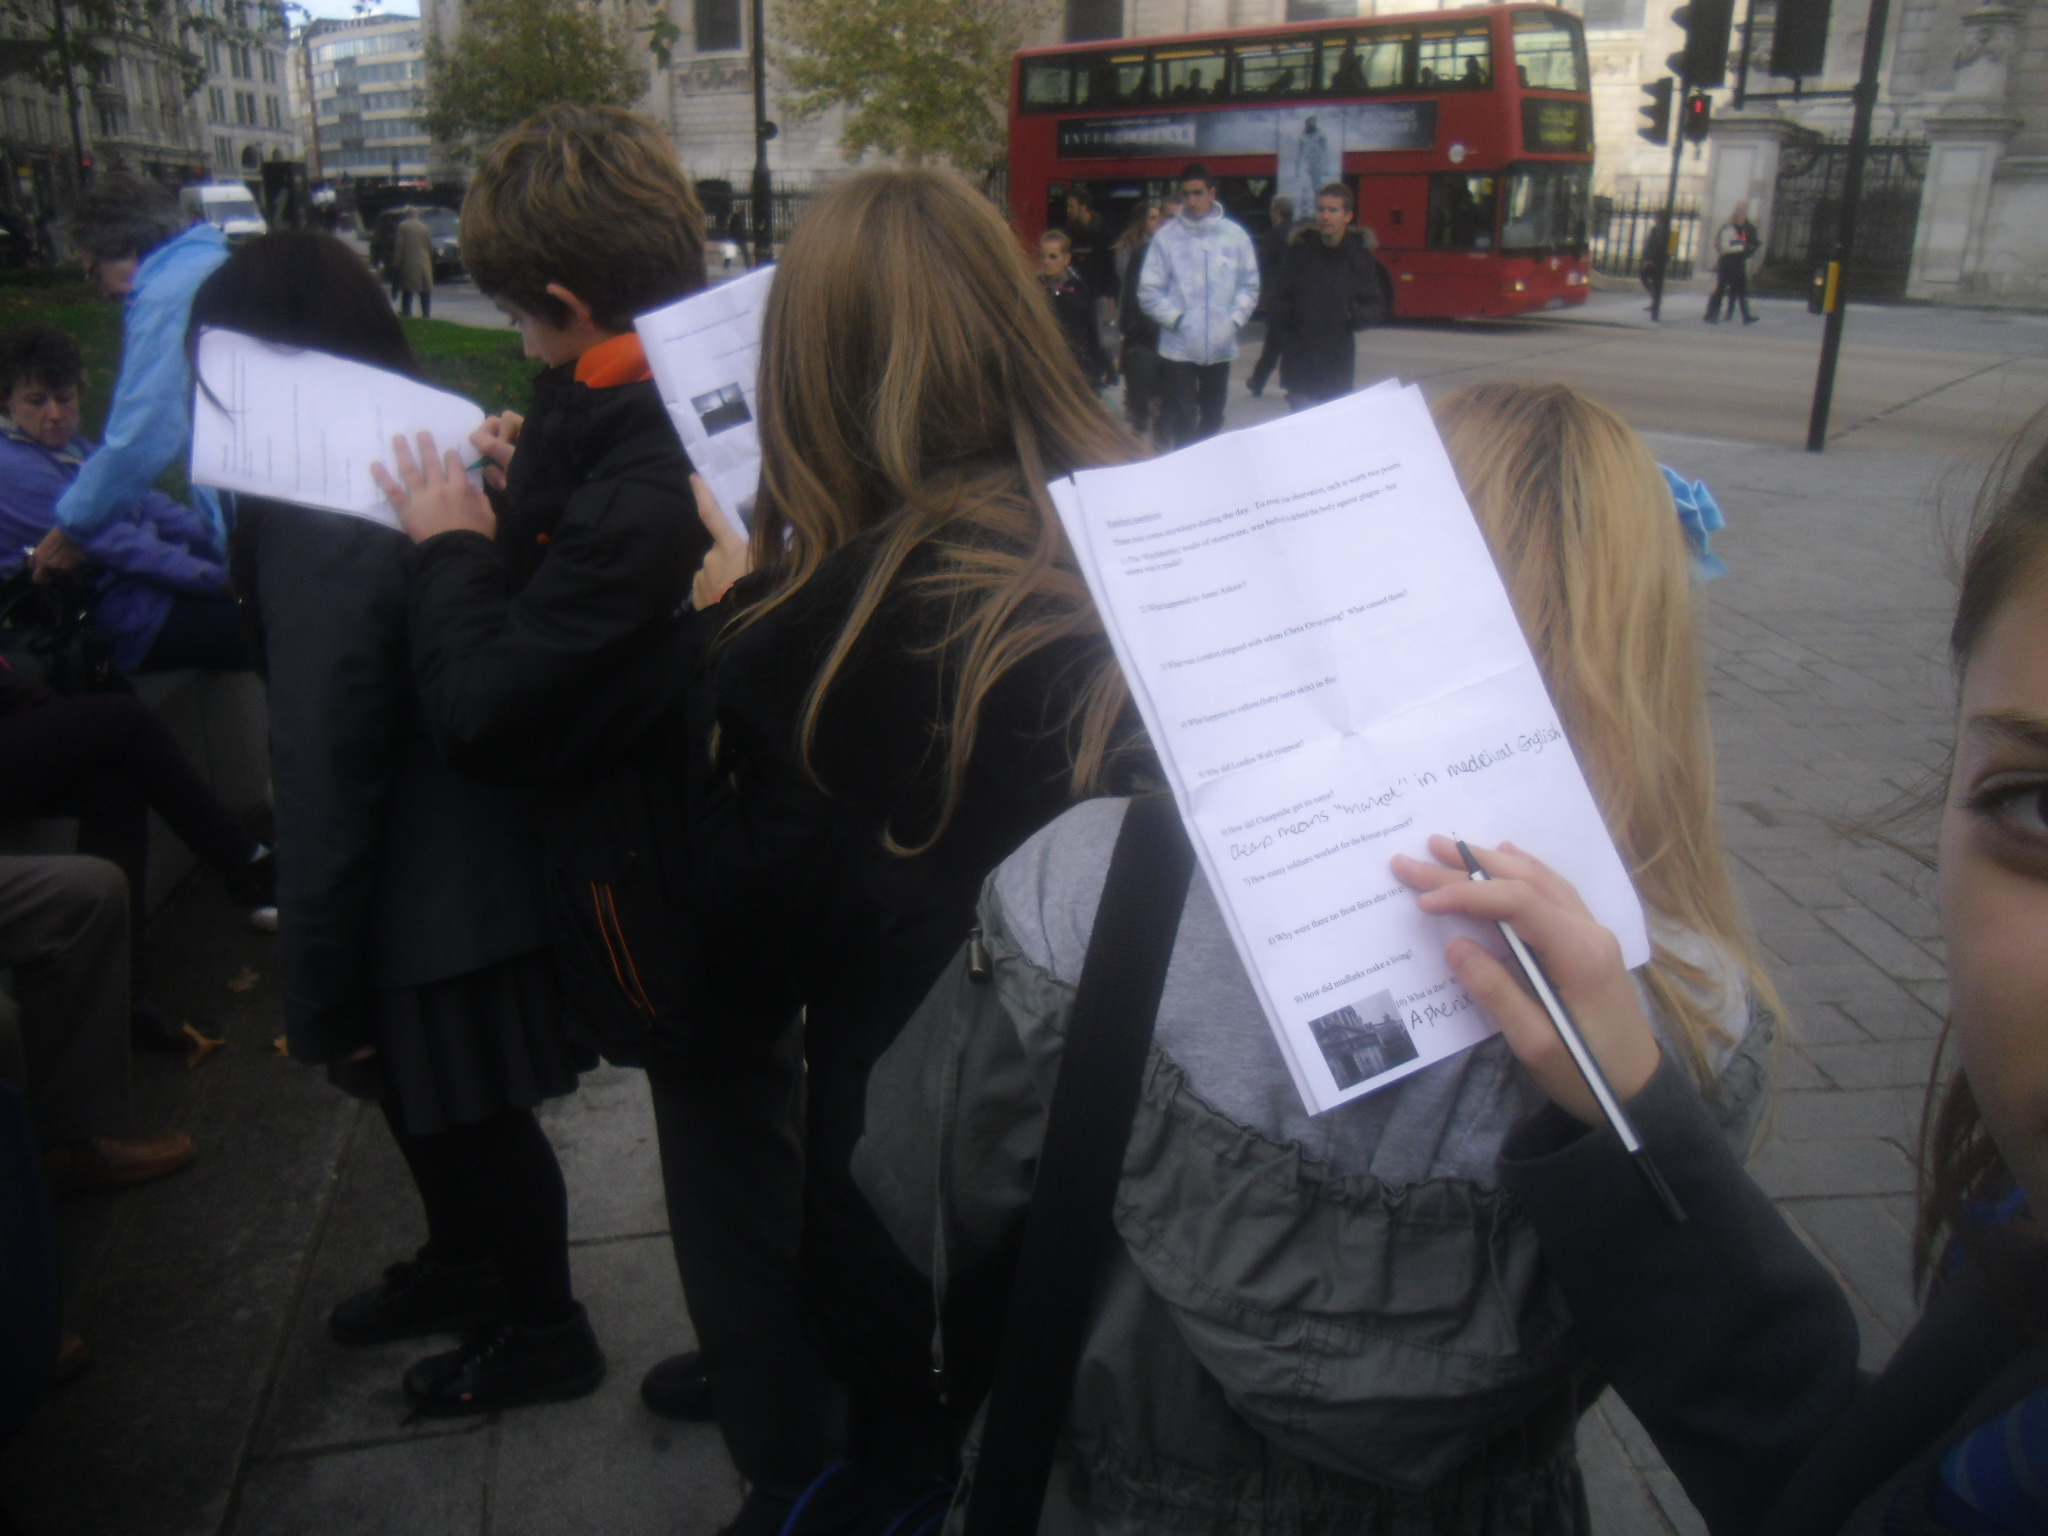 Can a day change Year 8's view of London's past? Reimagining the school trip